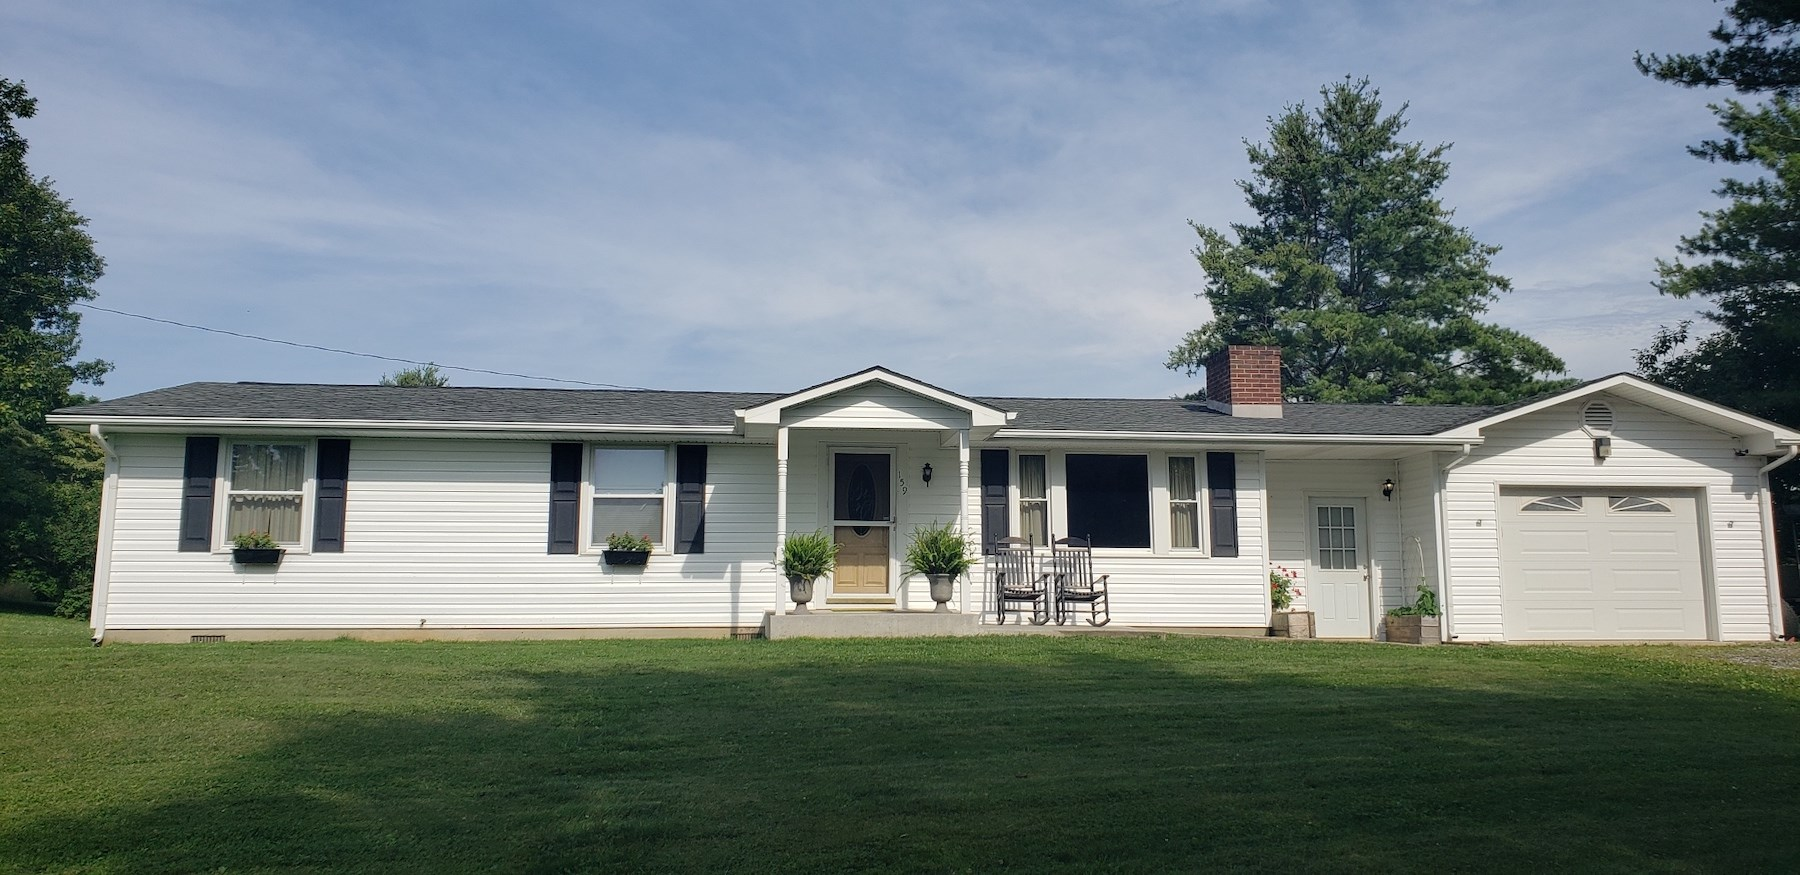 Beautiful Country Home for Sale in Pilot VA